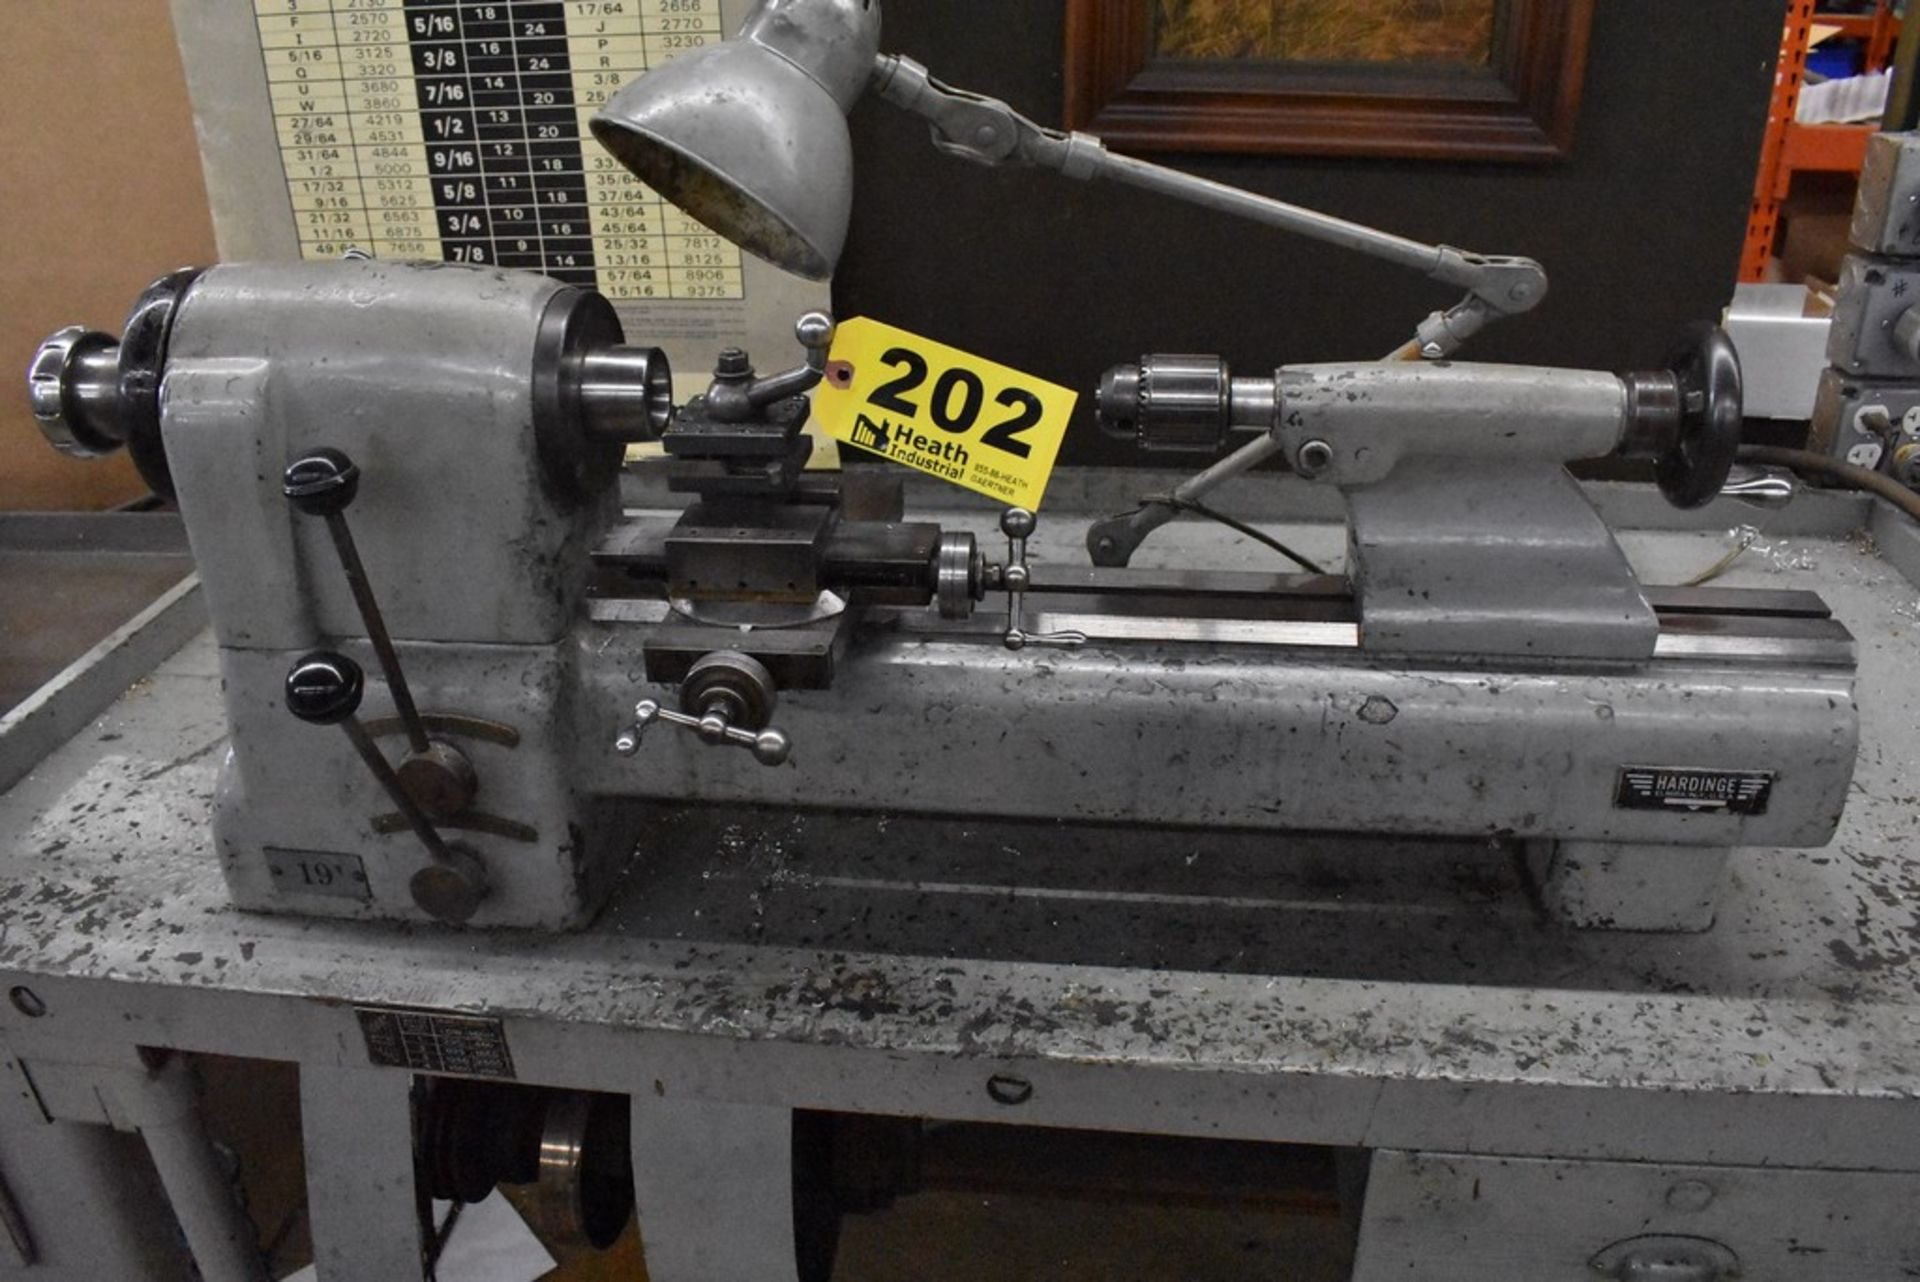 HARDINGE NO. 59 PRECISION SPLIT BED LATHE, S/N 59-16741, WITH SWIVEL COMPOUND, MOUNTED ON TABLE - Image 6 of 7